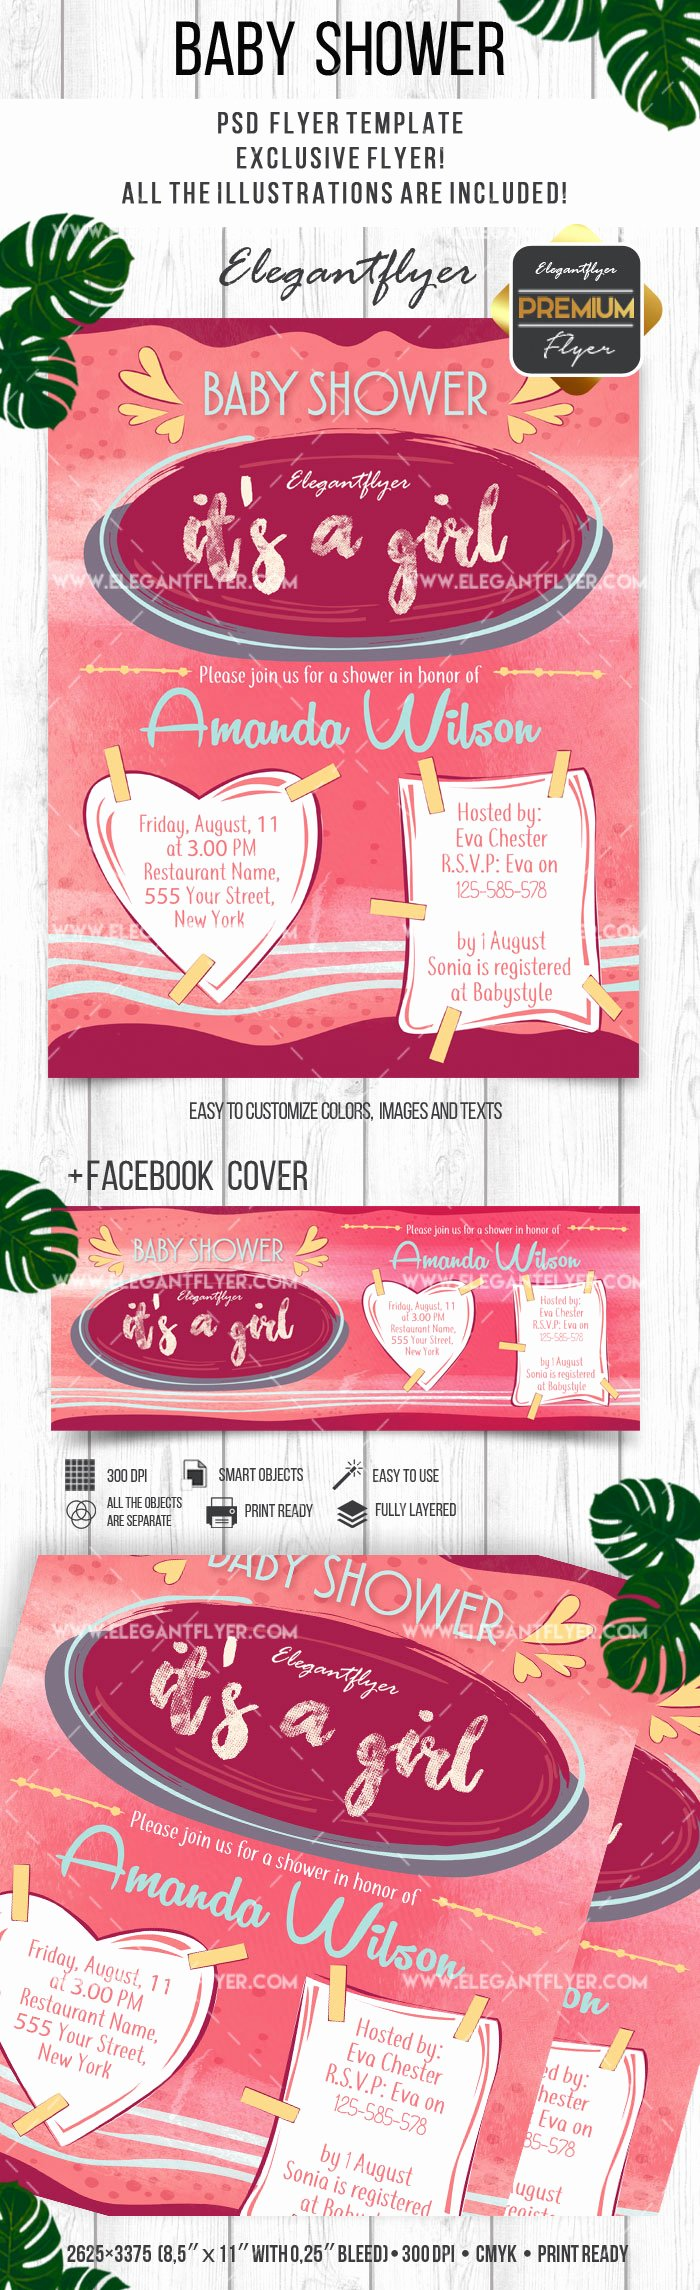 Baby Shower Flyer Template Beautiful Baby Shower Invitations for Girls Psd Flyer – by Elegantflyer